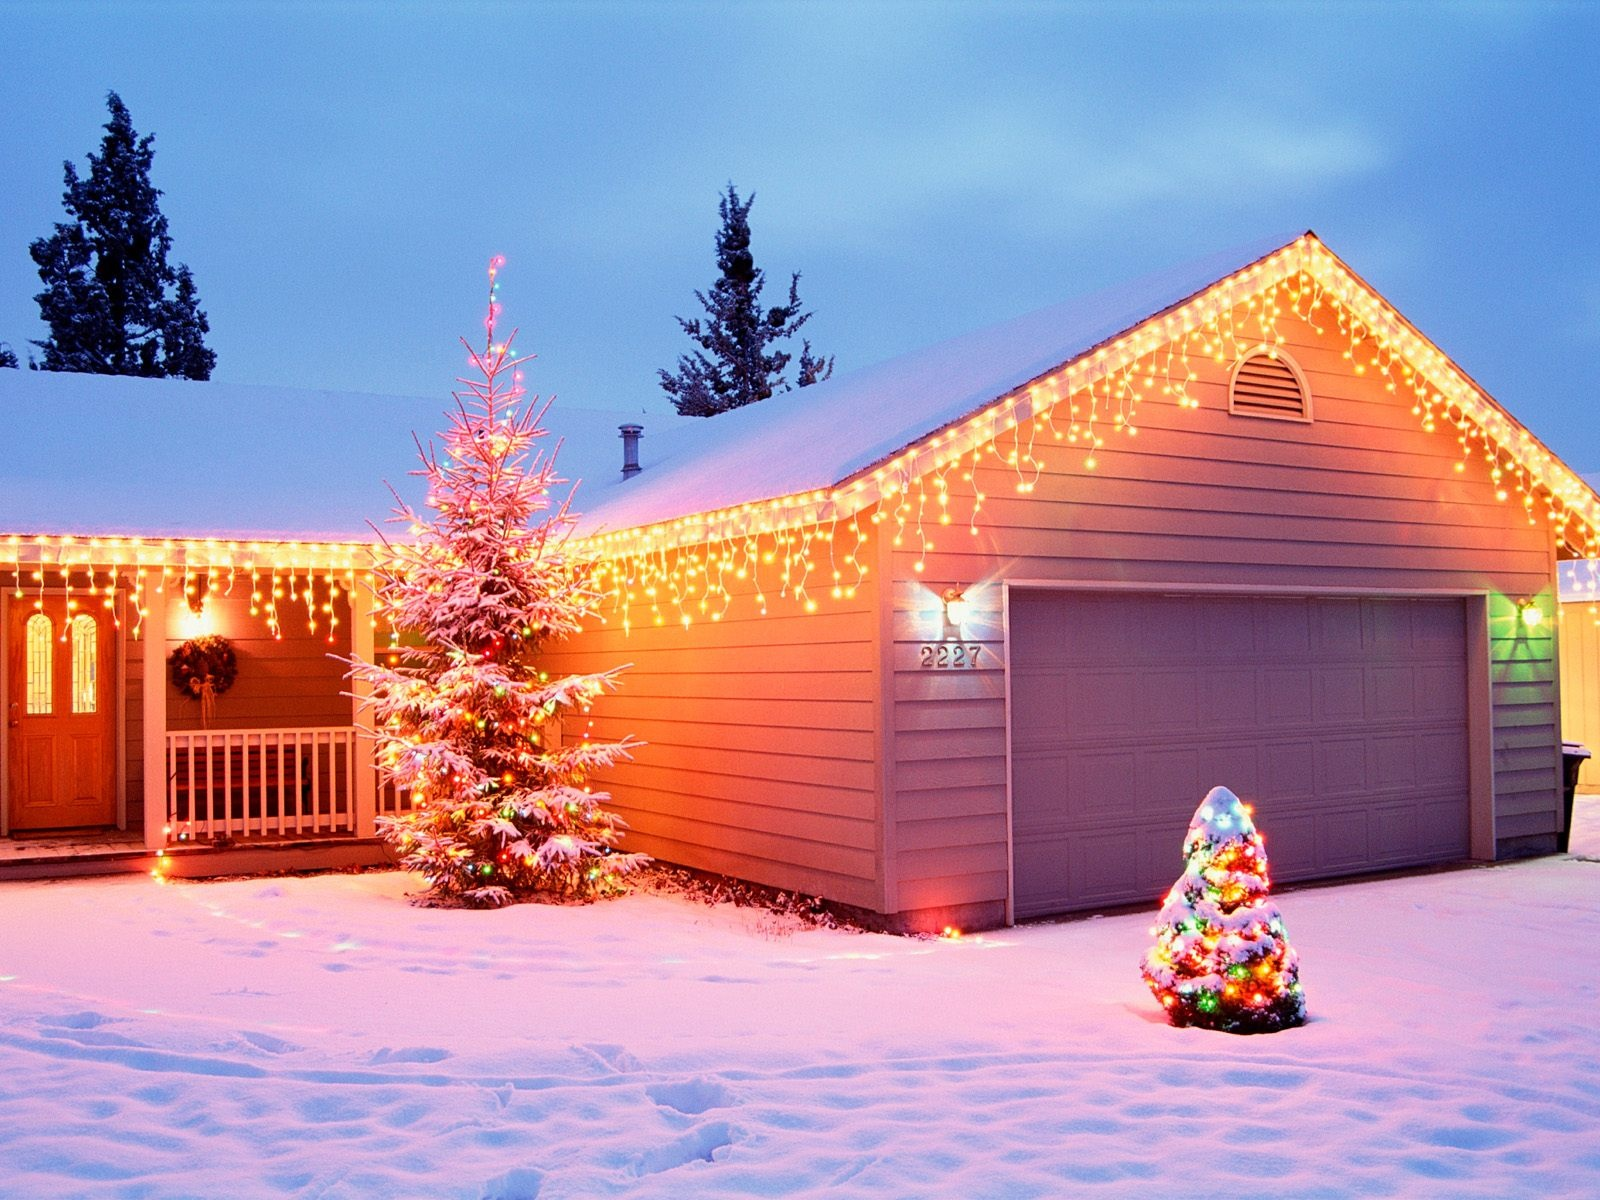 christmas house decorations wallpapers and stock photos - Christmas House Pictures